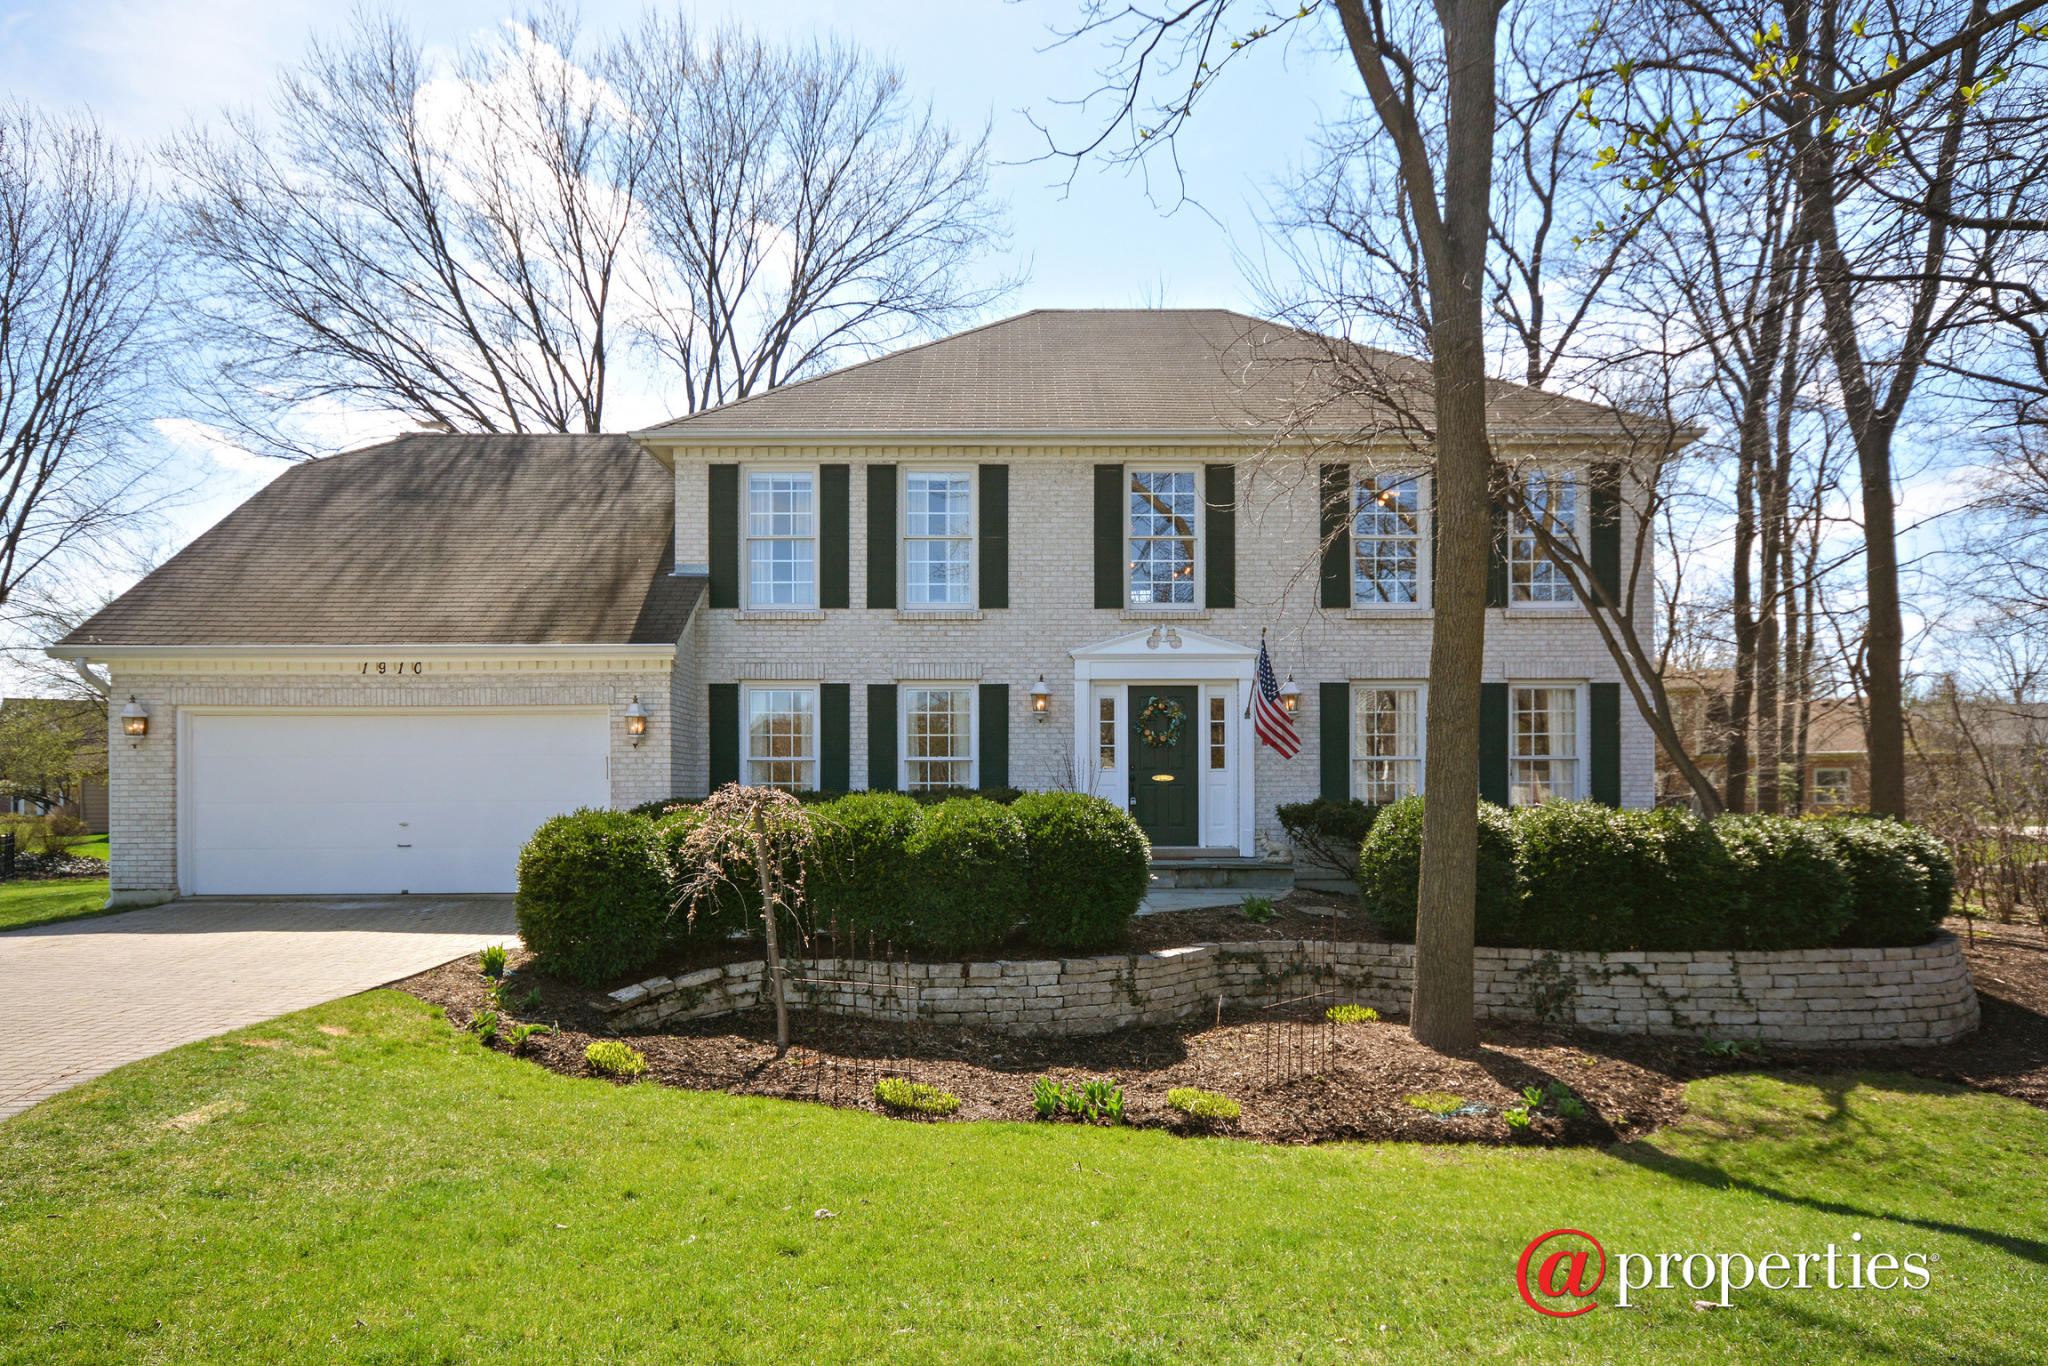 1910 Bluegrass Ct Saint Charles IL Estimate and Home